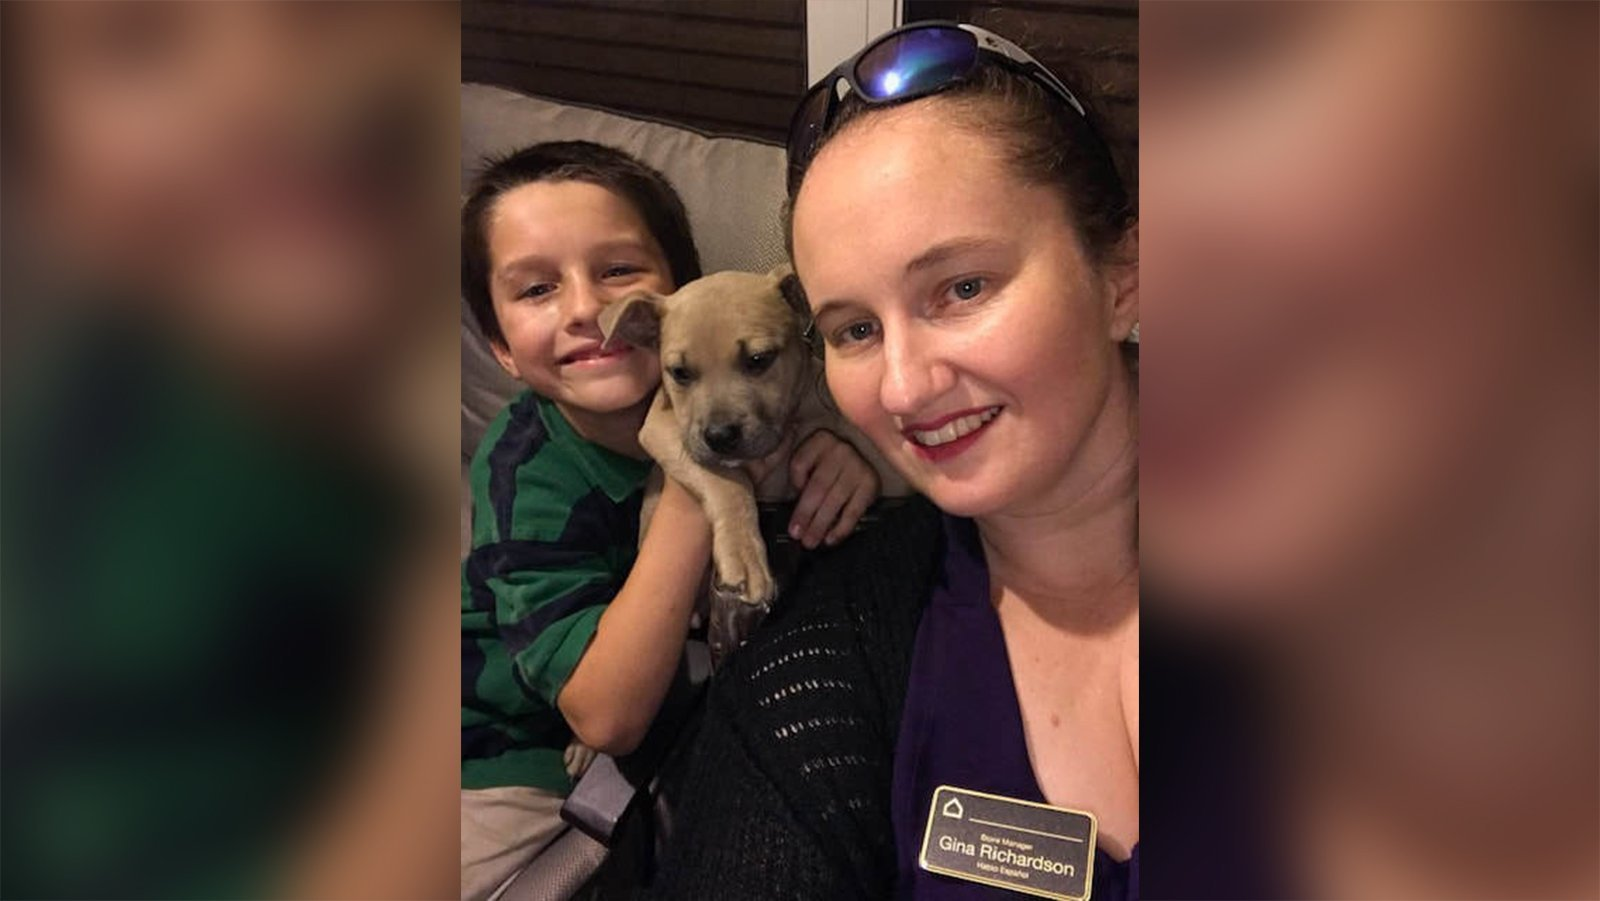 Oriley, 10, and his mom, Gina Richardson, with Zeus.